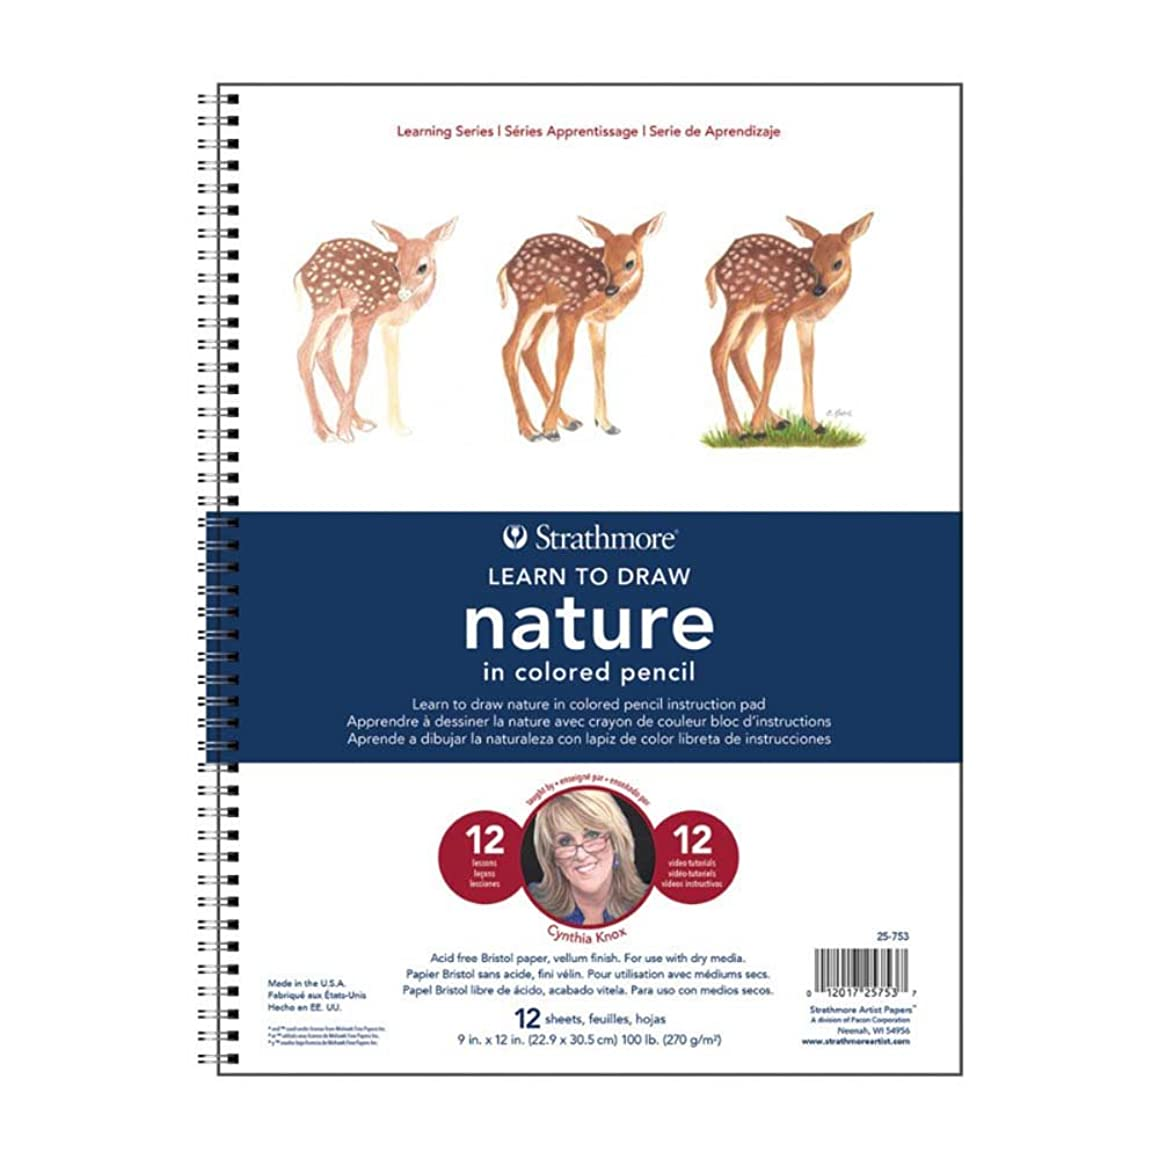 Strathmore ((25-753 300 Learning Series Colored Pencil Nature Pad